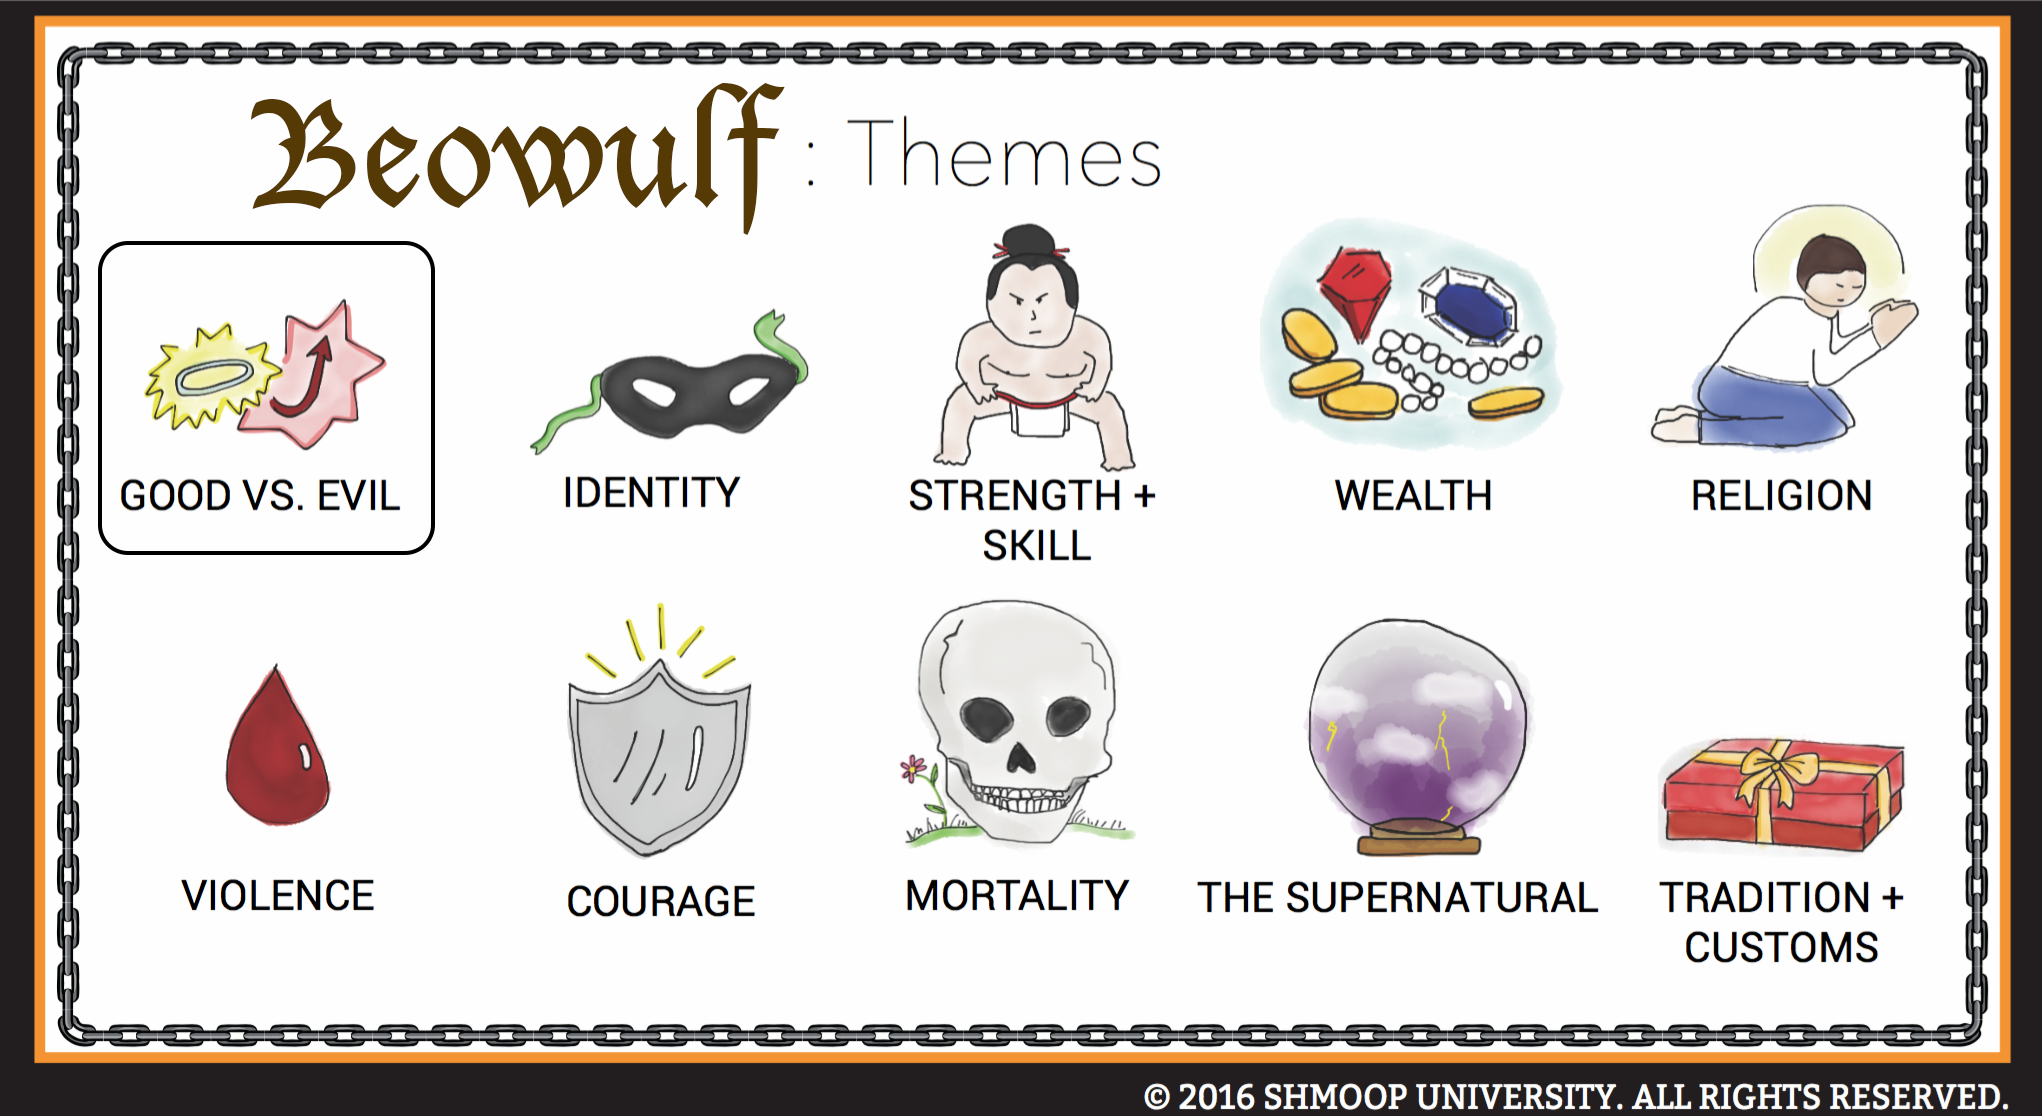 Beowulf Theme of Good vs. Evil